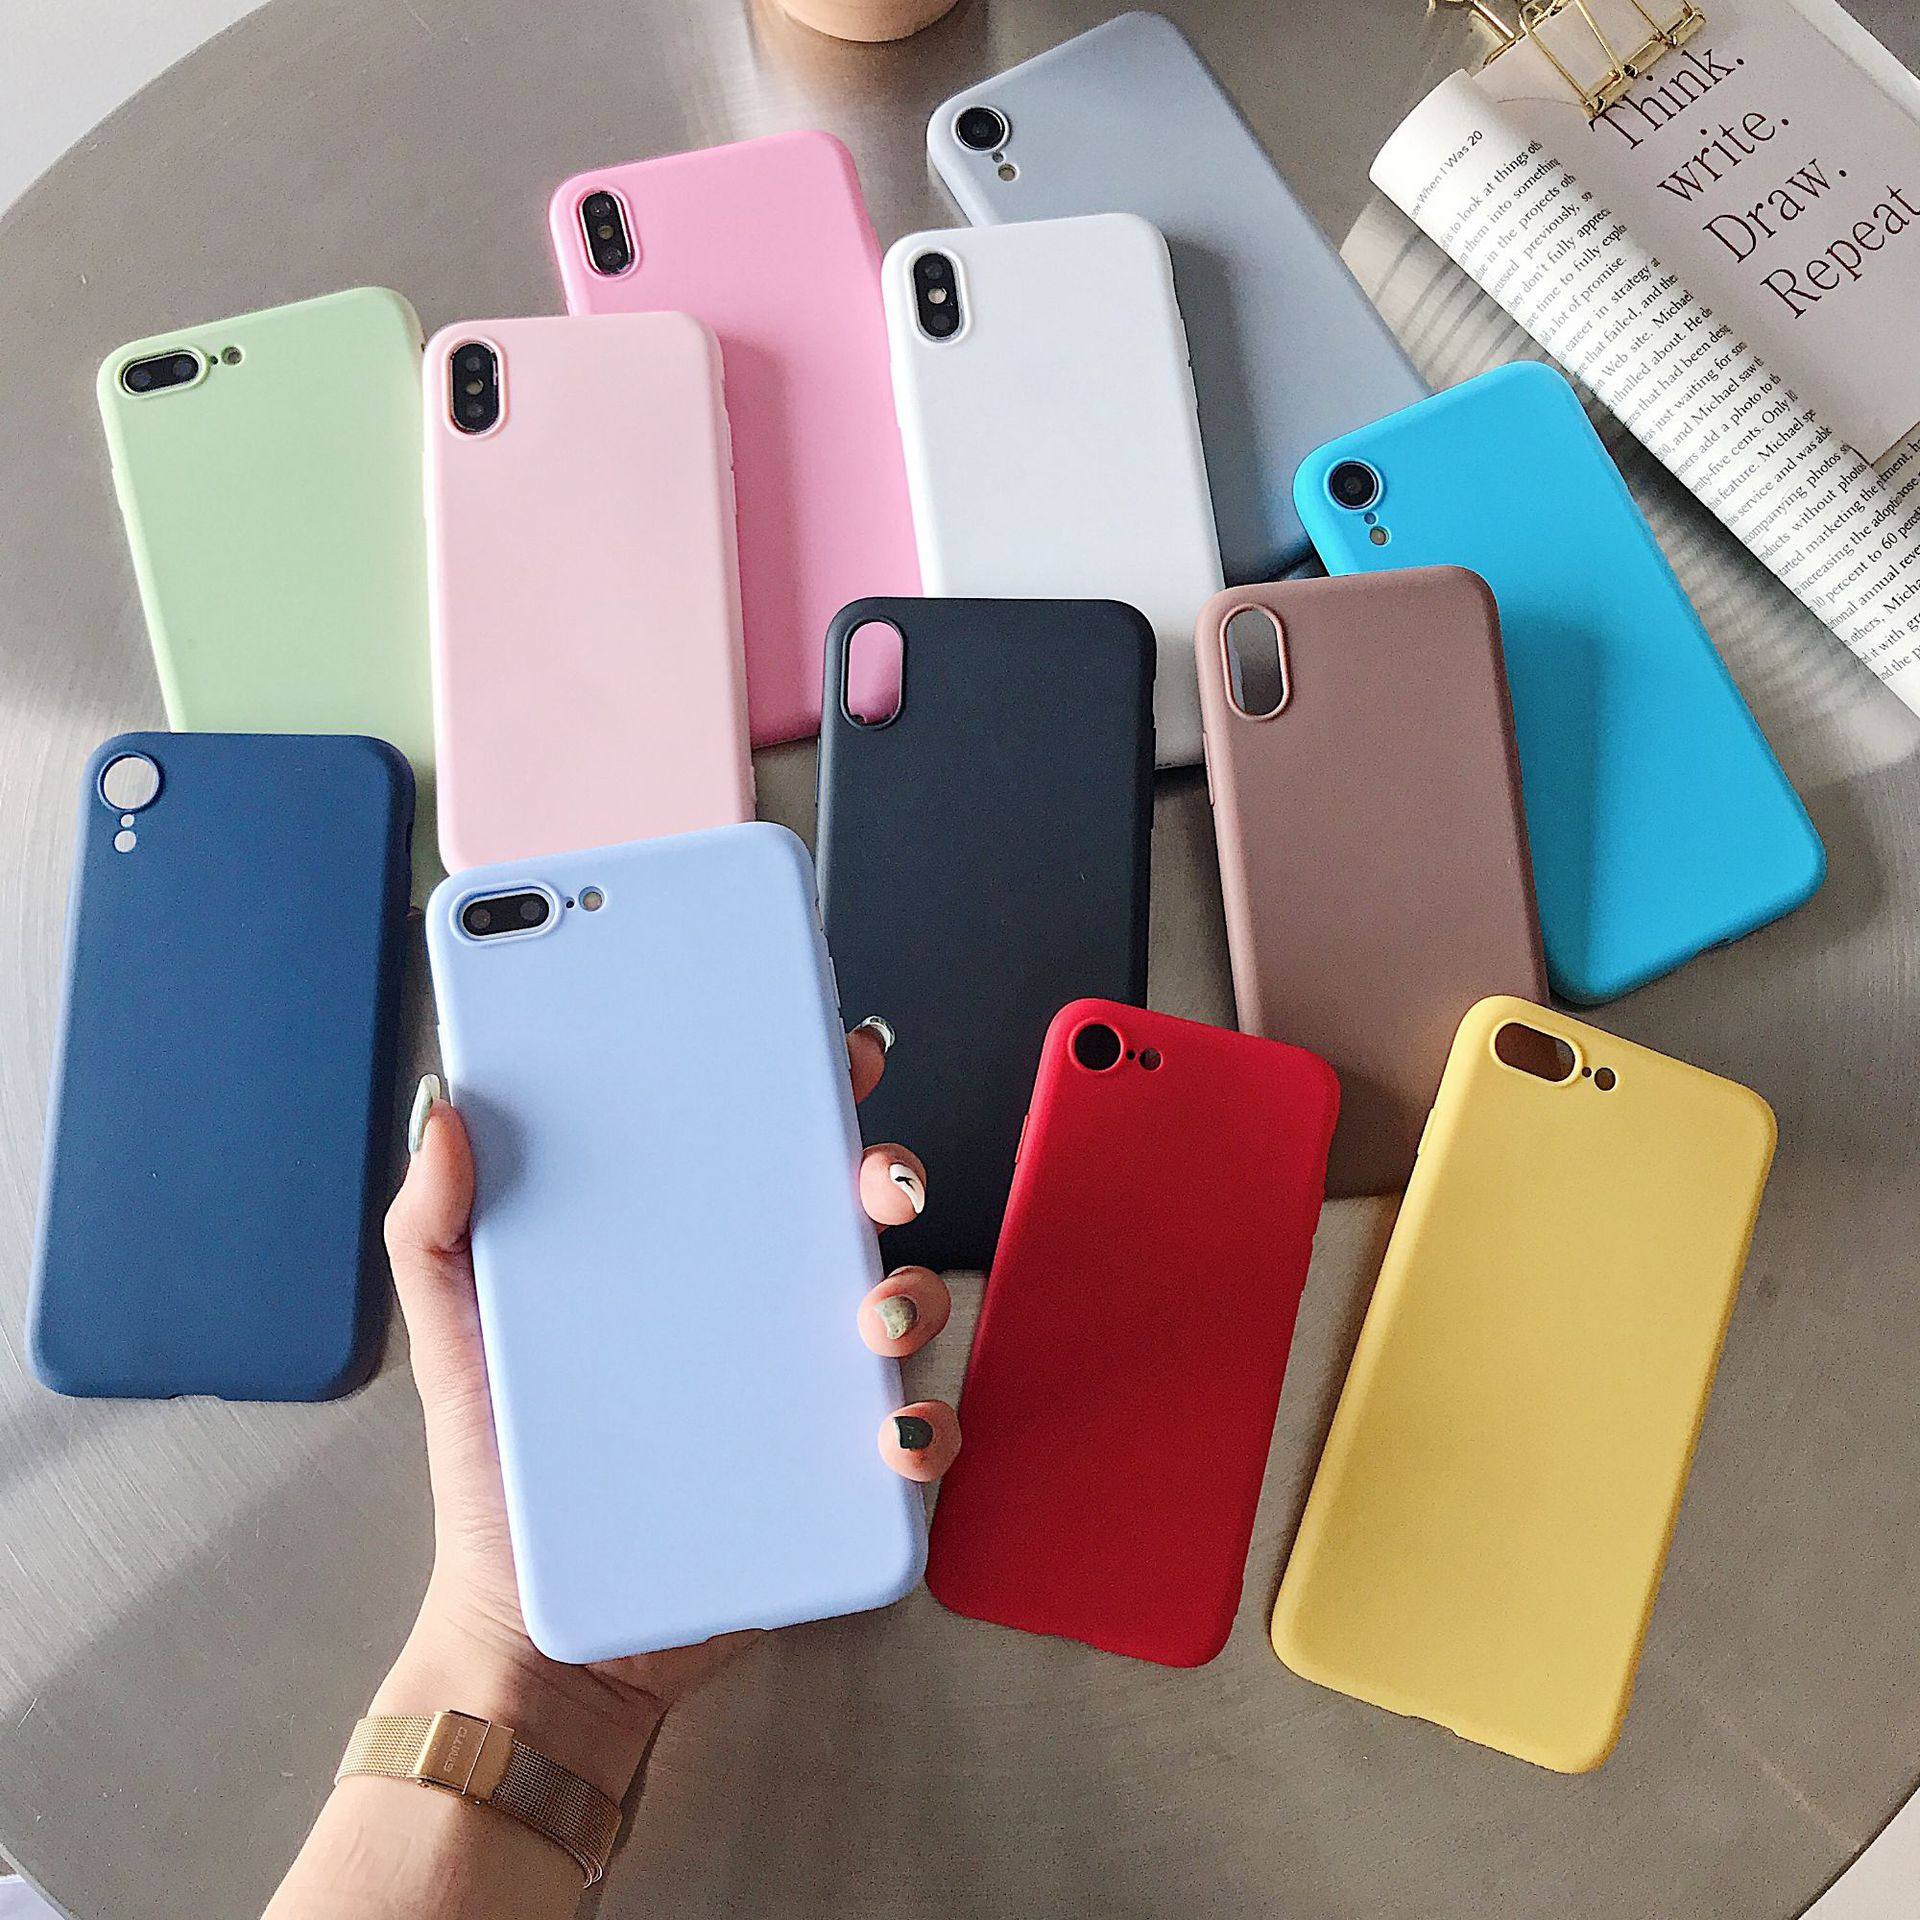 Candy Color Silicone Case on for Samsung <font><b>Galaxy</b></font> S9 Plus S10E A5 2017 A520 A720 J8 A5 A6 A8 Plus <font><b>2018</b></font> A920 TPU Fashion Cover image